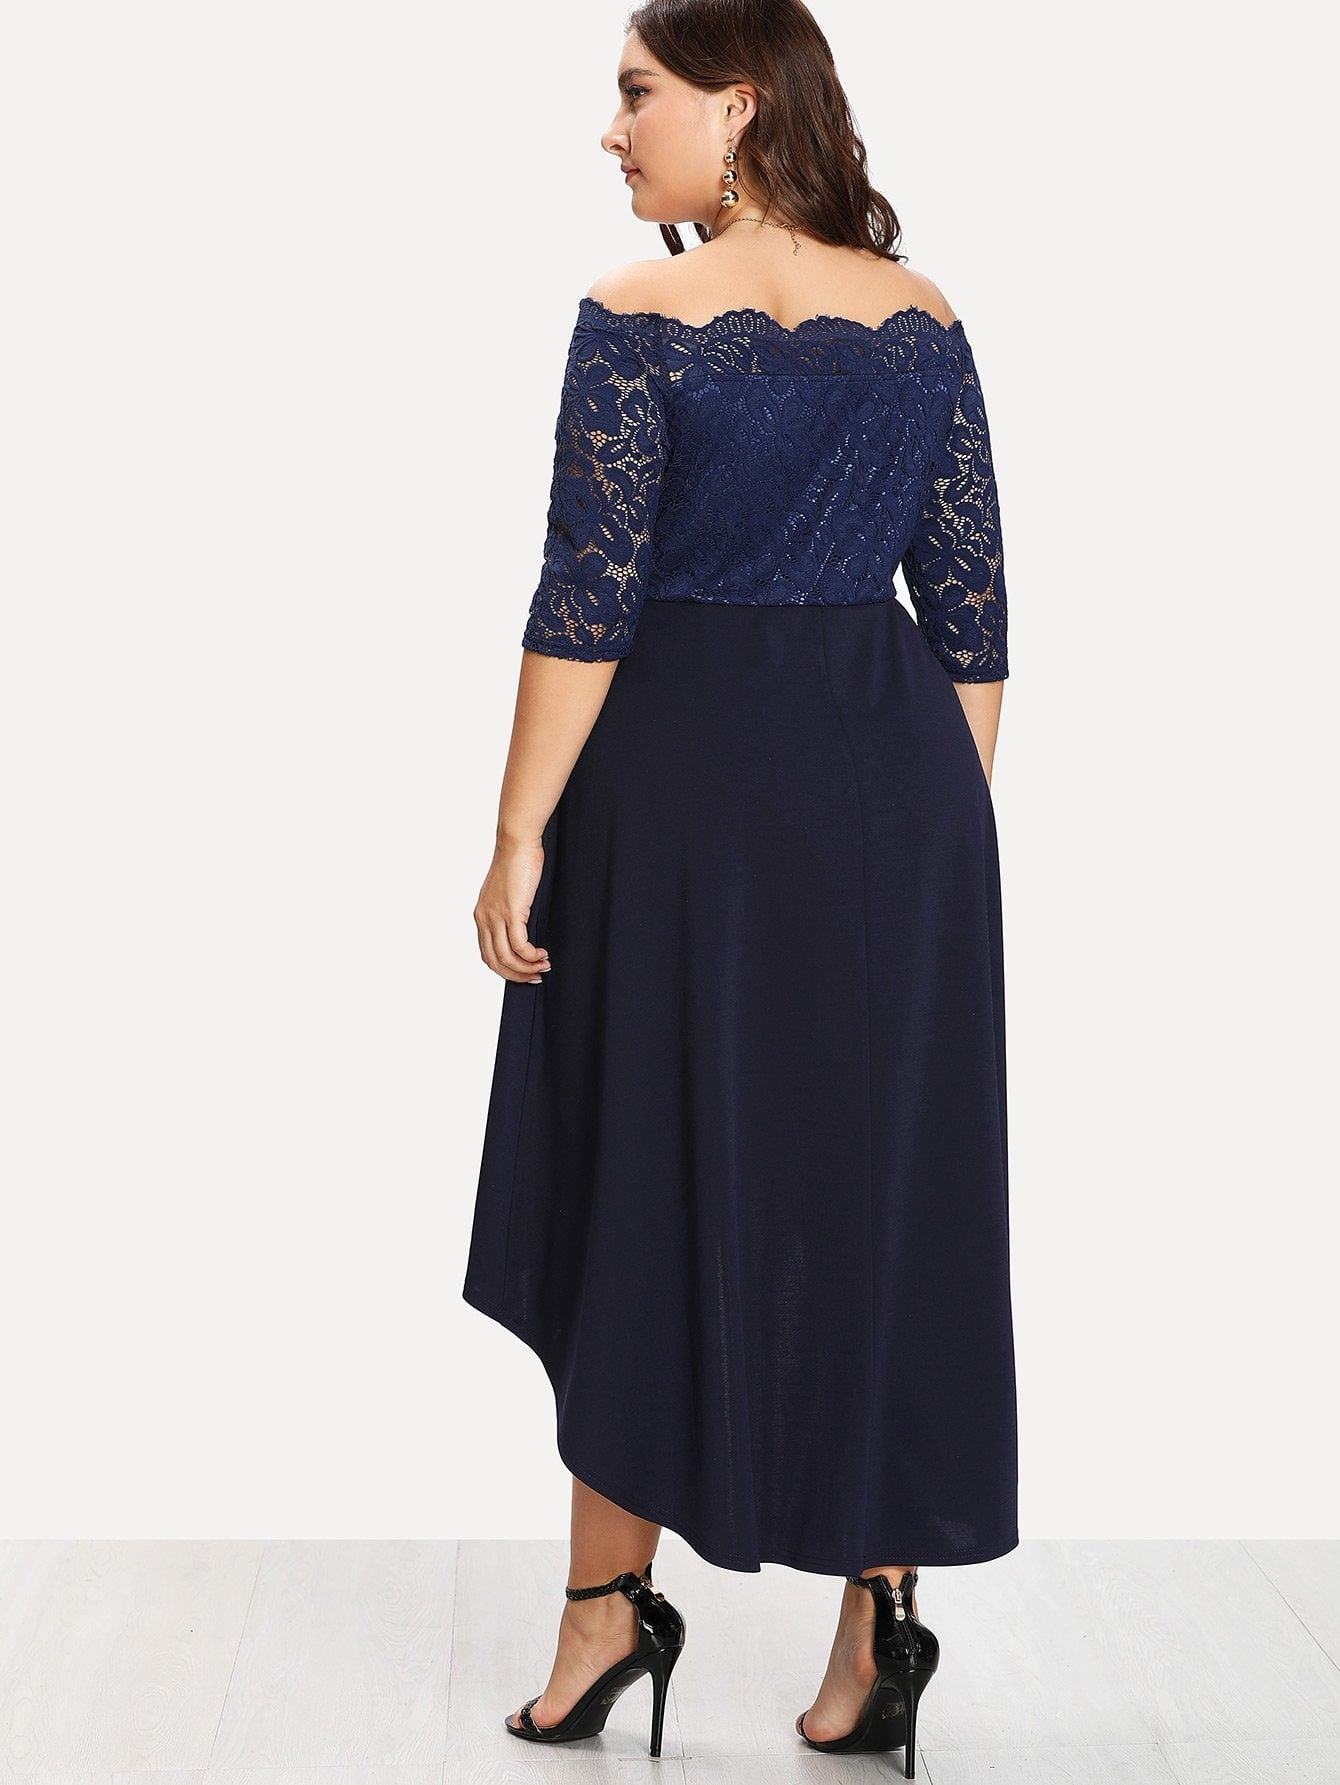 Plus Lace Overlay Dip Hem Bardot Dress